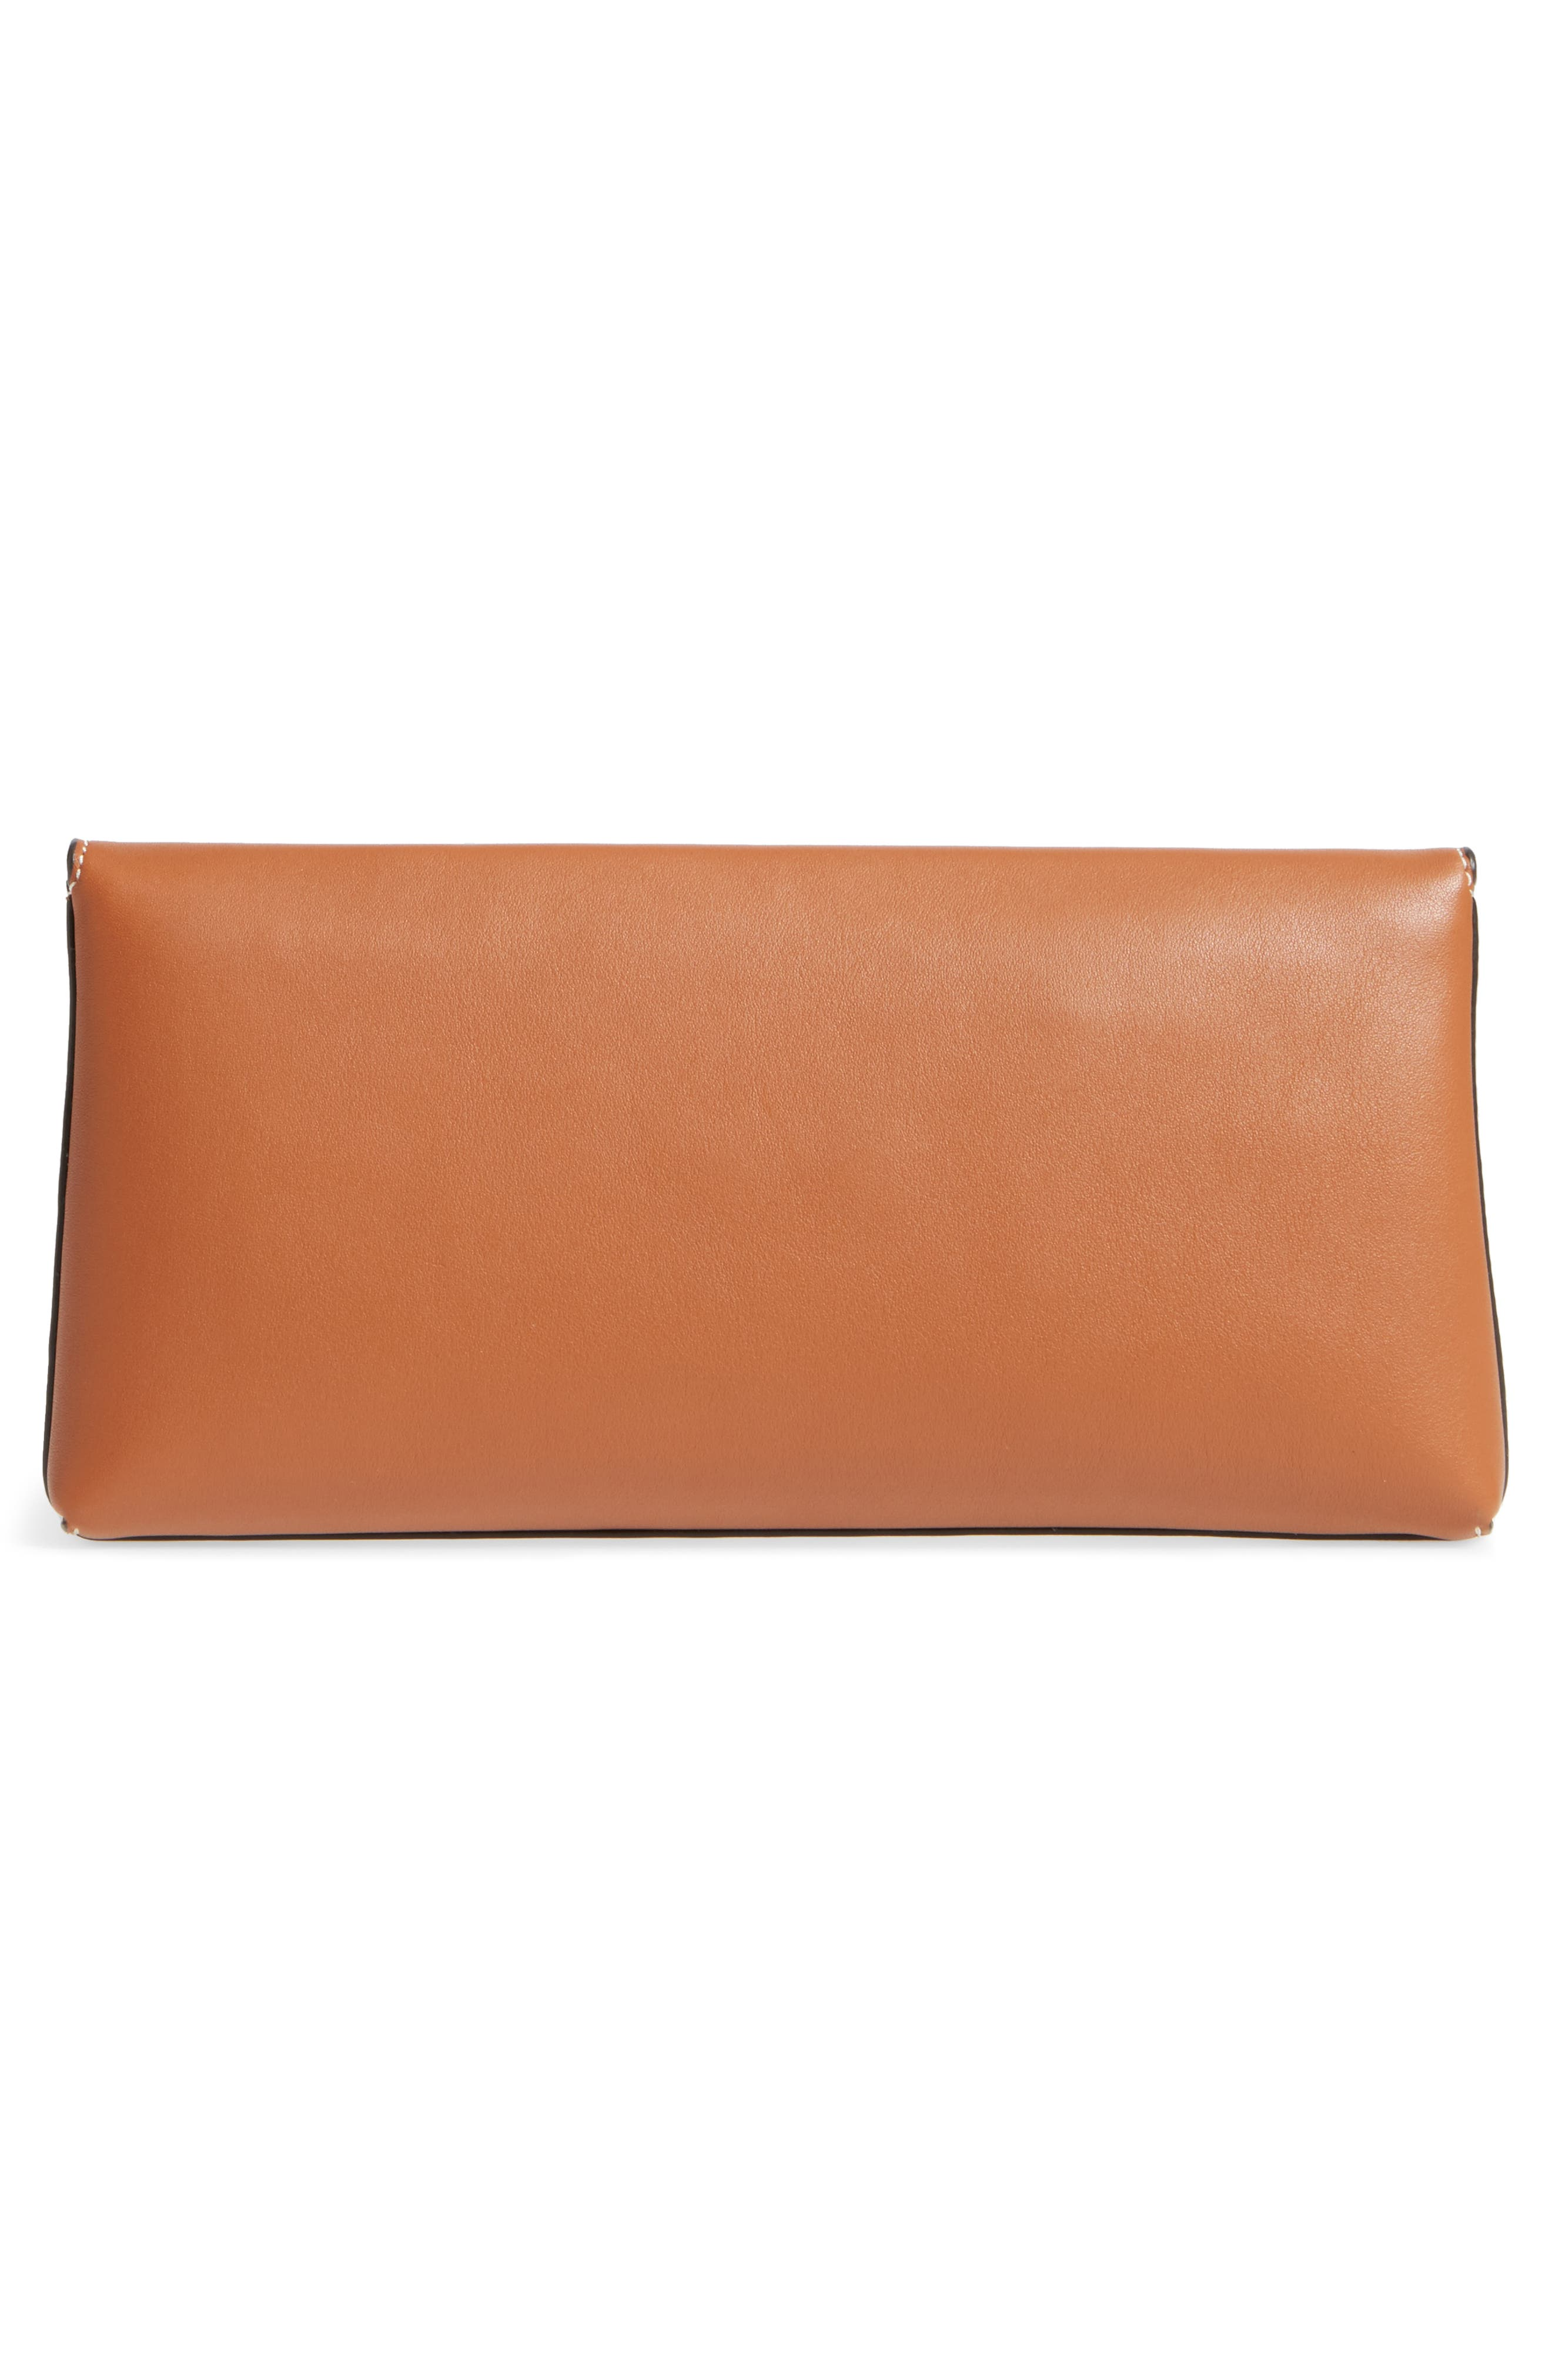 Miller Leather Clutch,                             Alternate thumbnail 4, color,                             New Cuoio